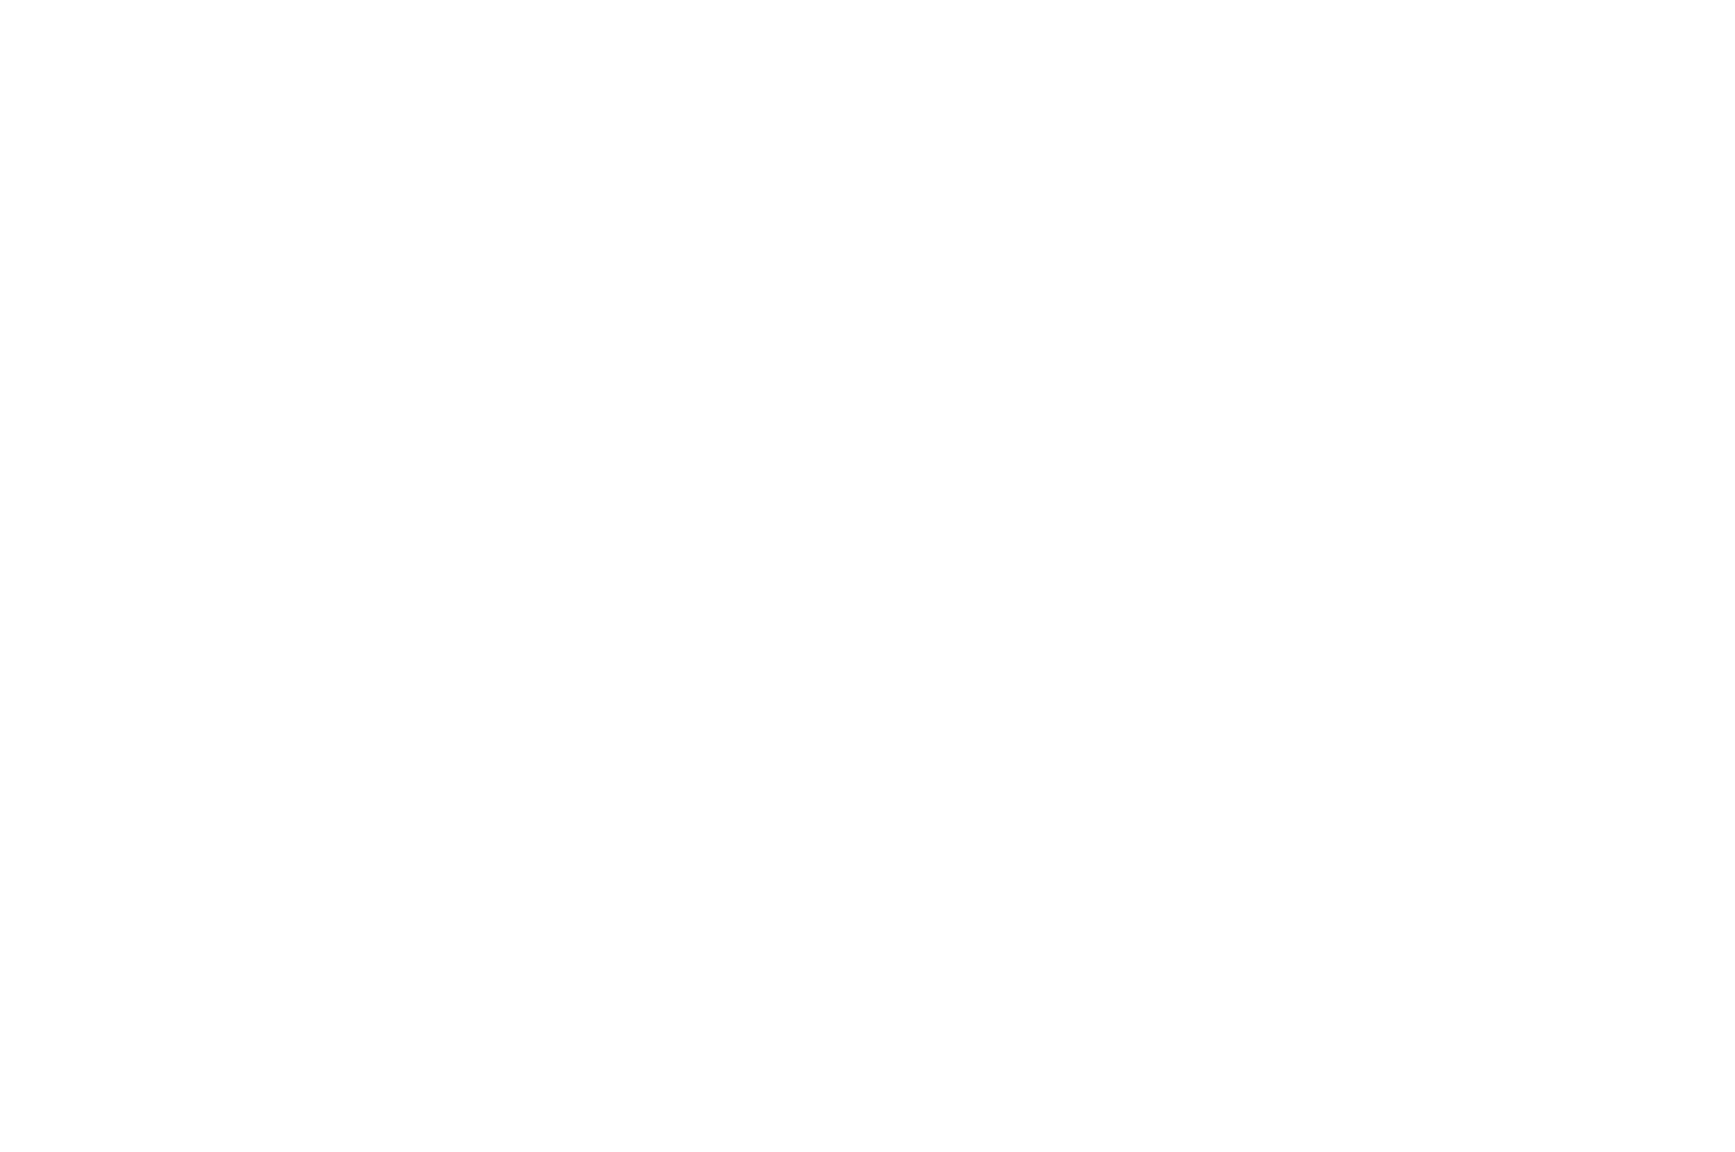 OFFICIAL SELECTION - Direct Monthly Online Film Festival - 2018.png